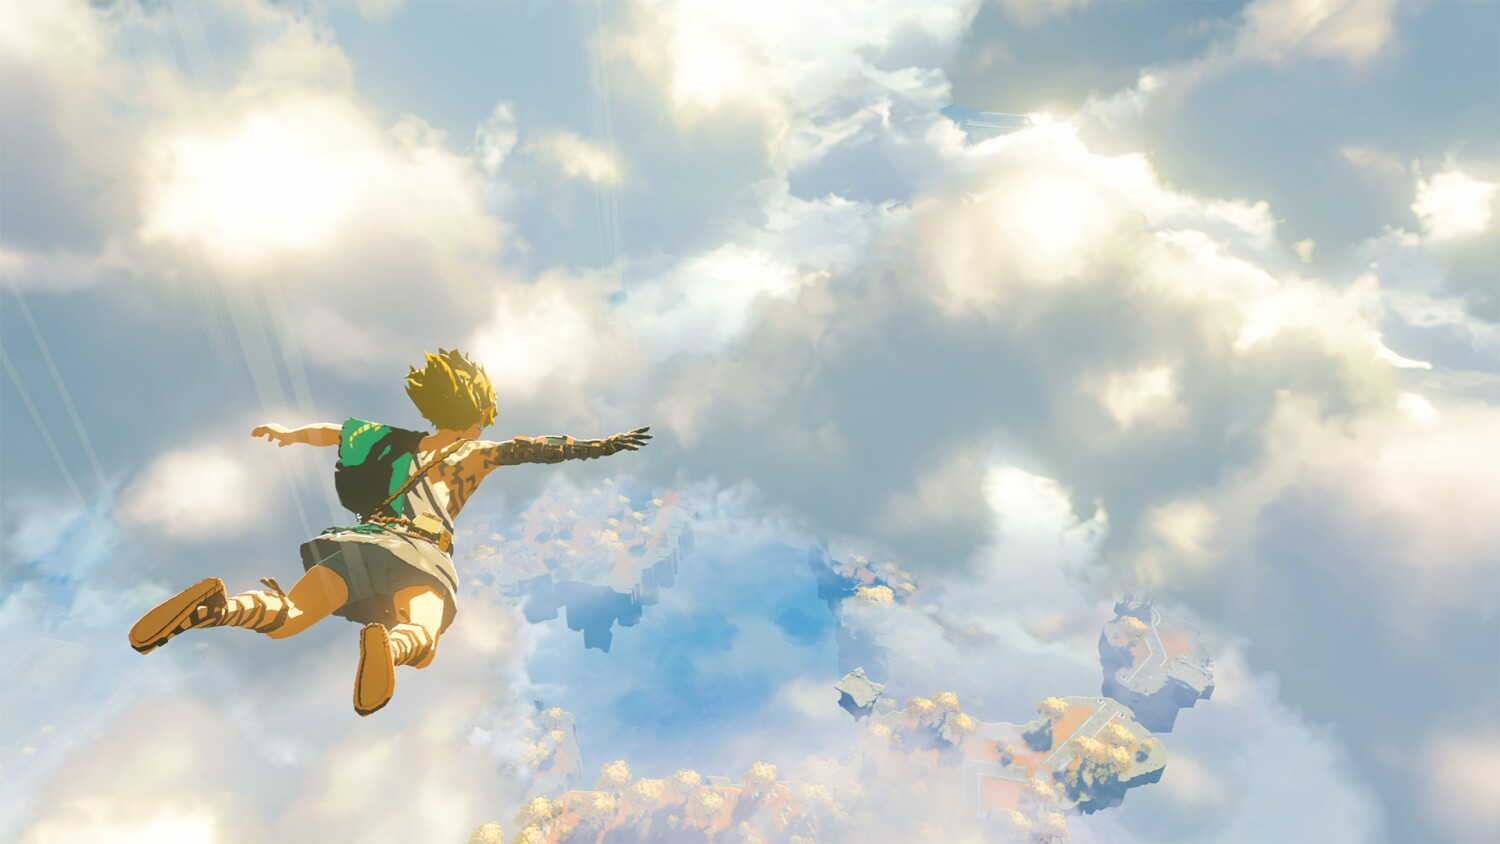 Nintendo's latest reveal and the hype, storylines and mysteries of E3 2021